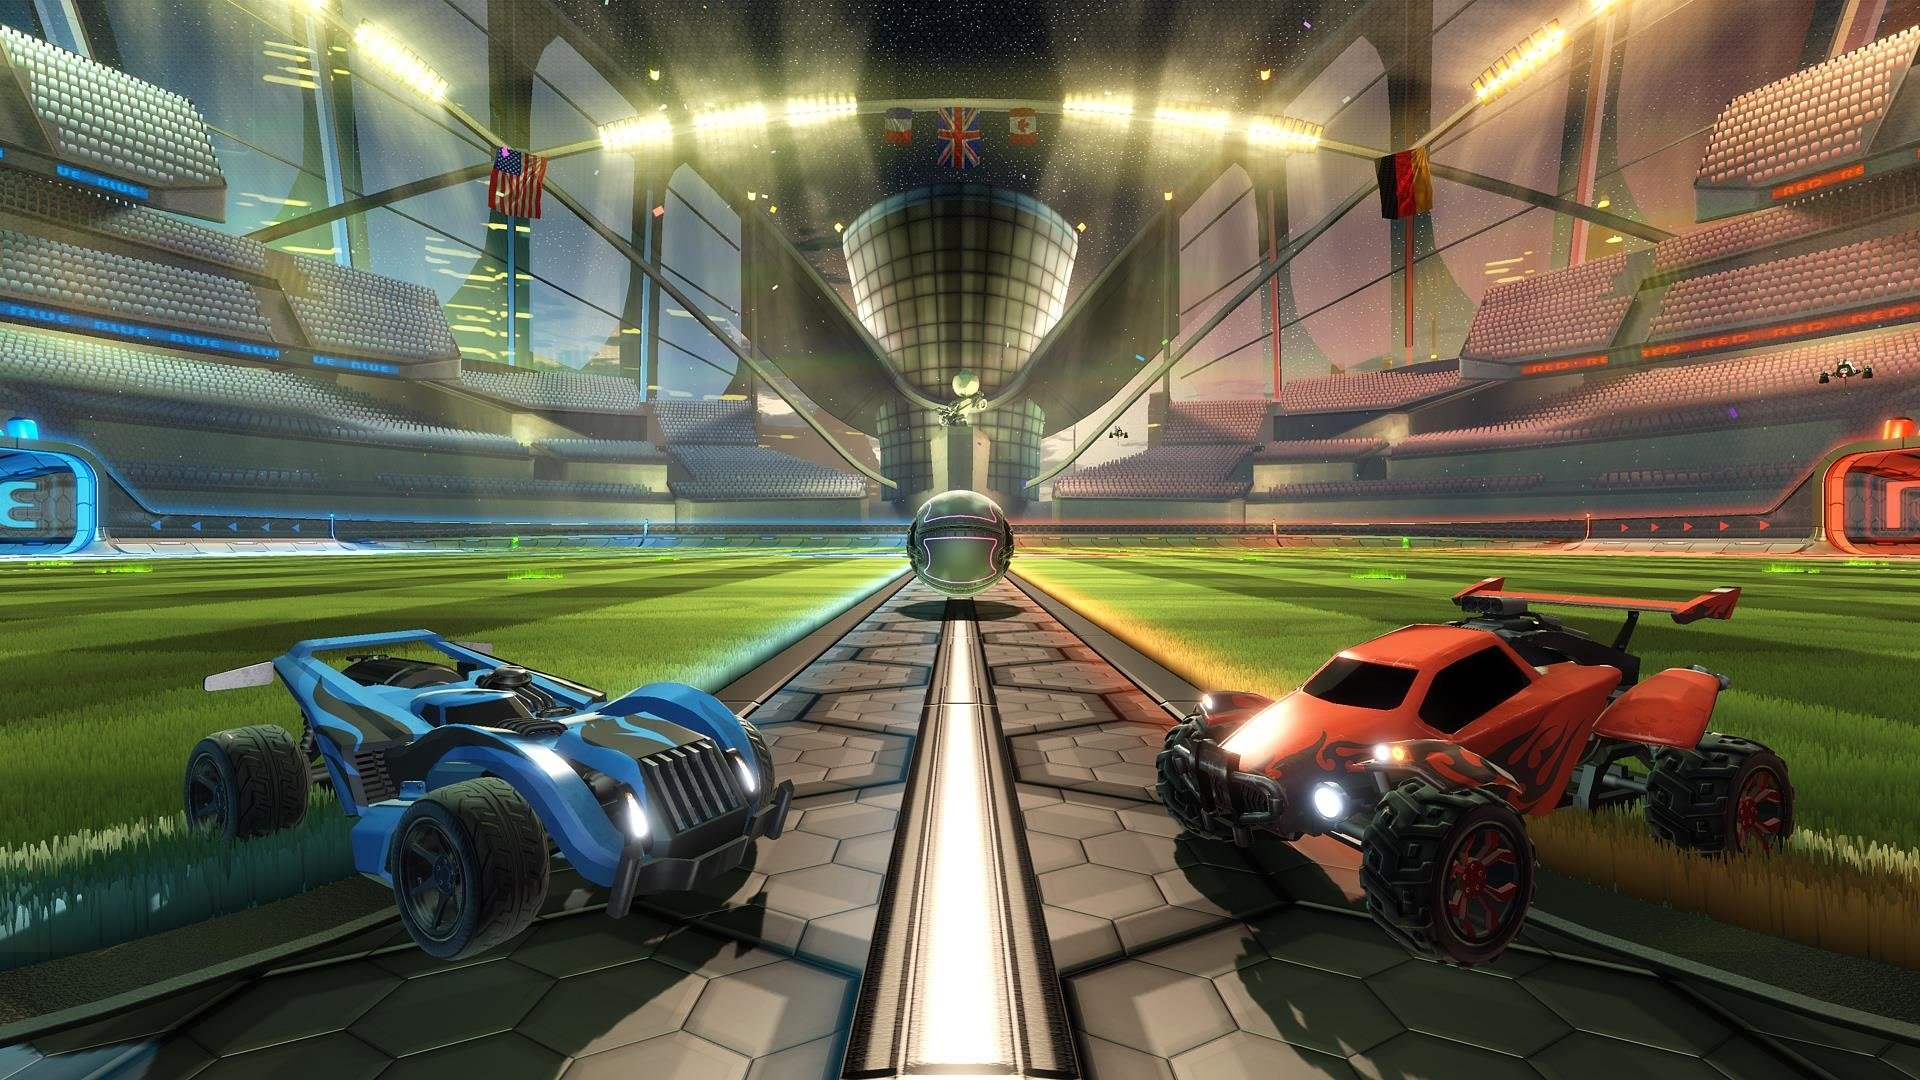 Rocket League Passes 4 Million Downloads in Just 2 Weeks on PS4 and PC